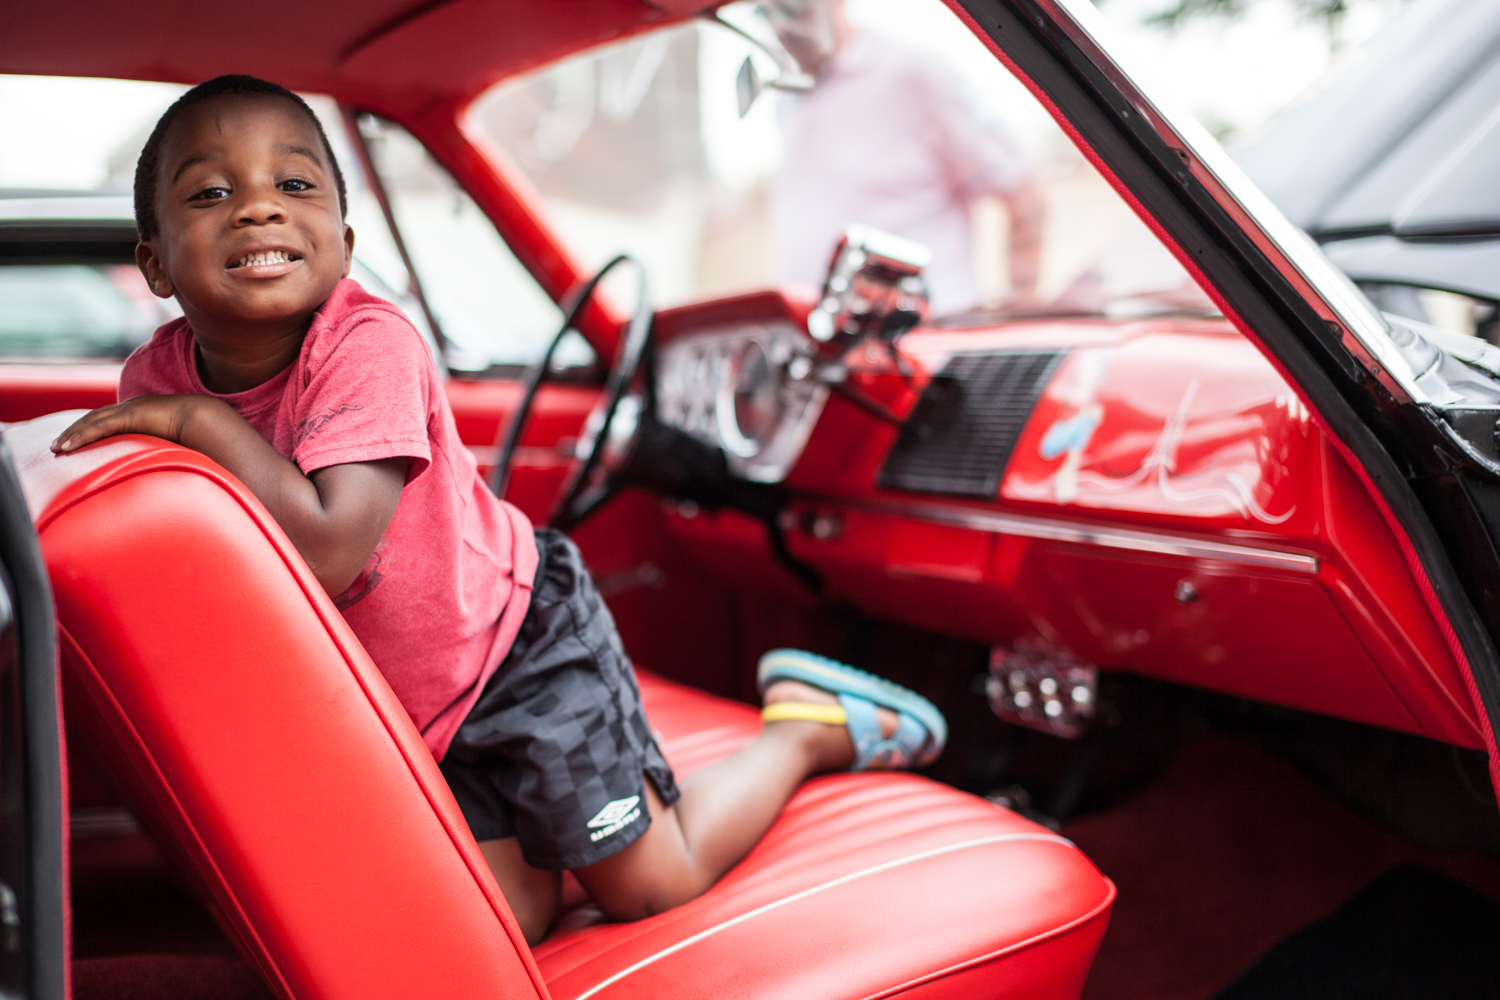 Family friendly fun at Cruisin the Loop in Sharonville